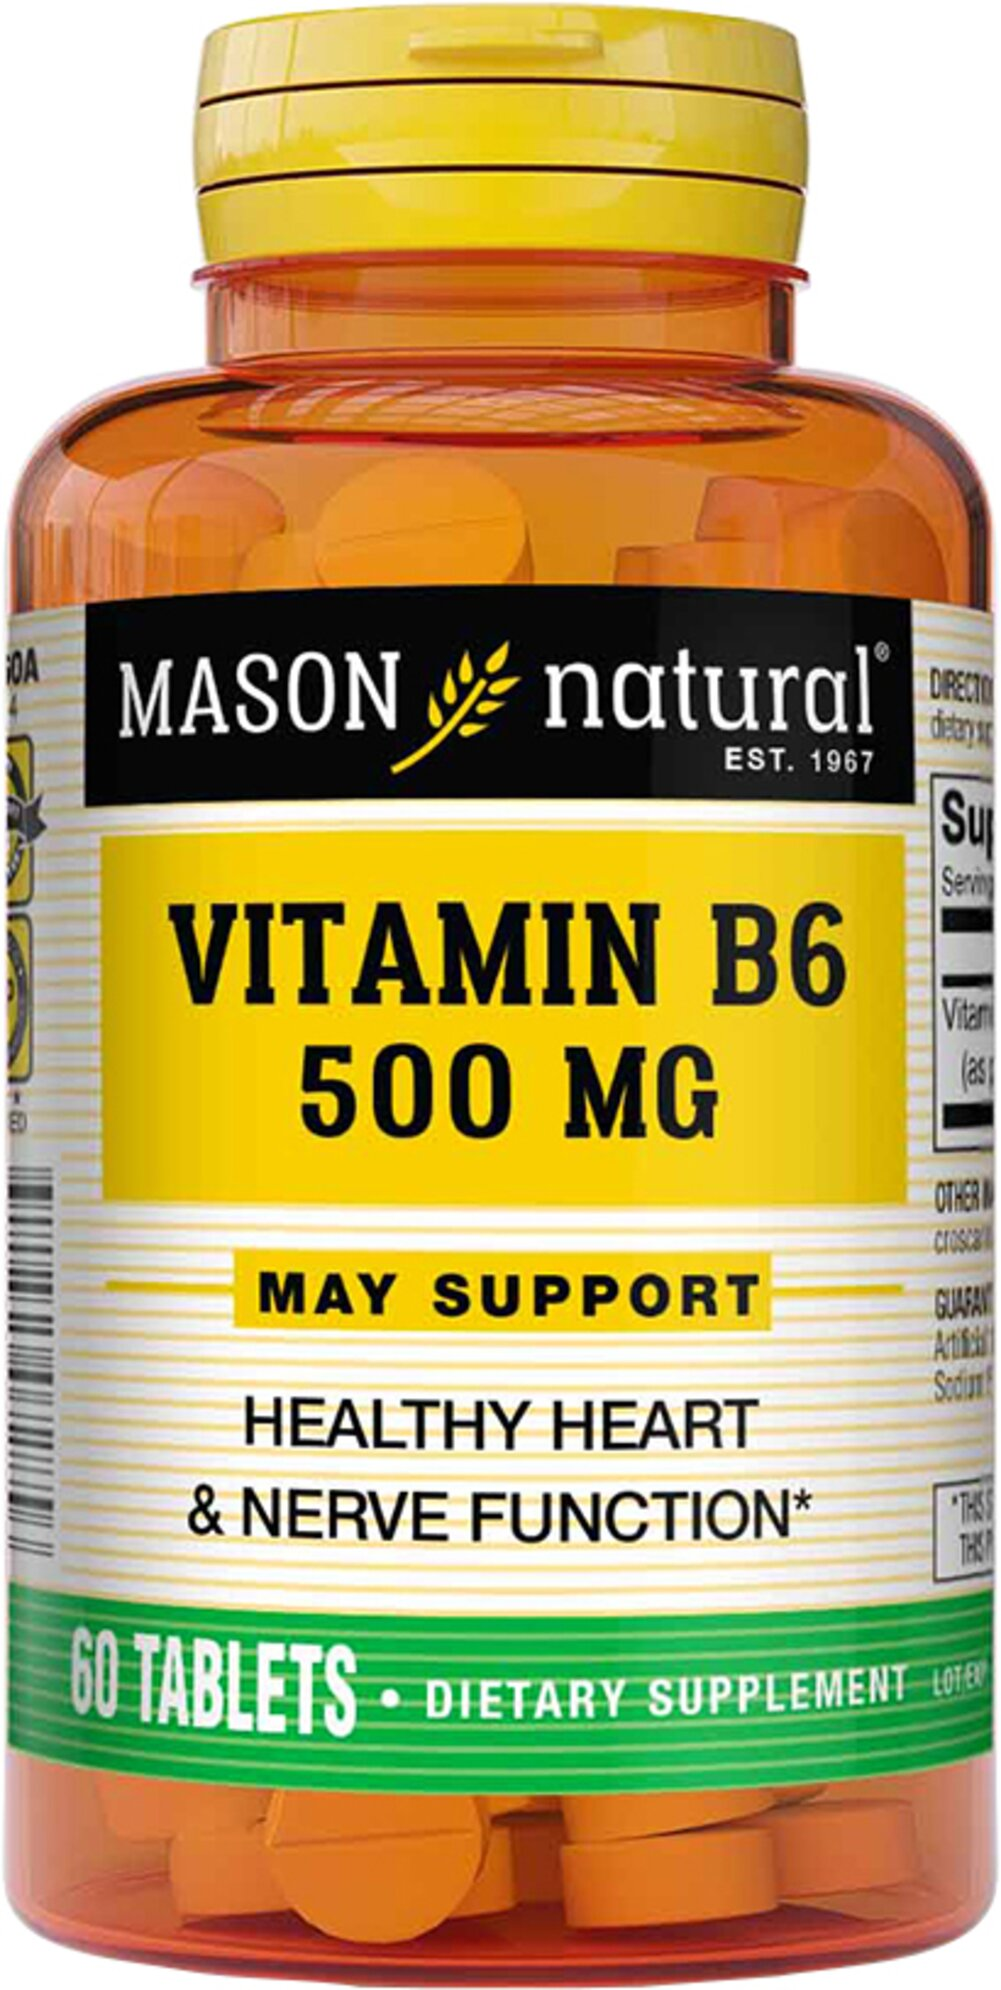 Vitamin B-6 500 mg We are proud to bring you B-6 500mg form Mason. Look to Puritan's Pride for high quality national brands at the best possible prices. 60 Tablets 500 mg $7.99